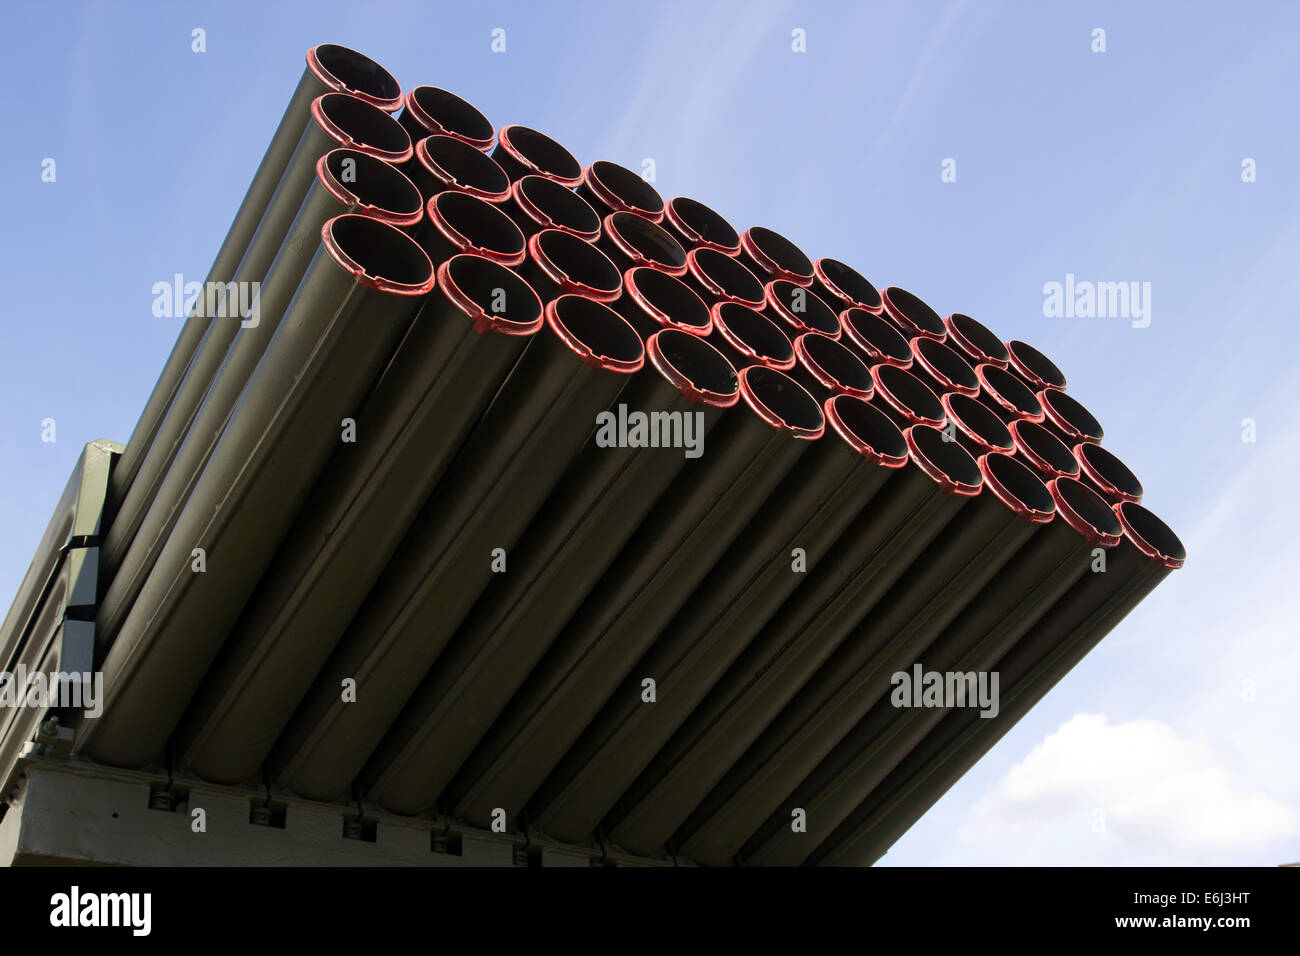 Grad, Russian multiple rocket launcher - Stock Image